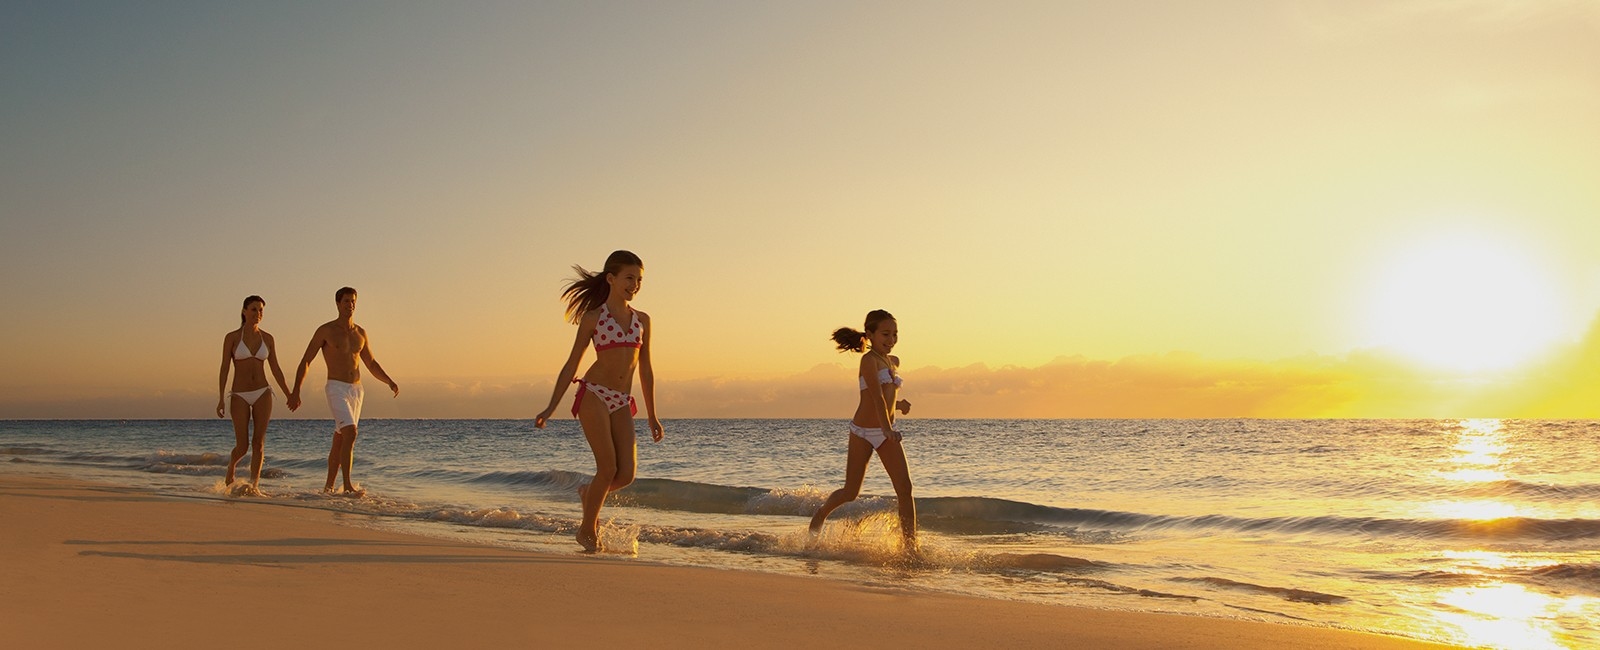 luxury family holidays - luxury holidays - header